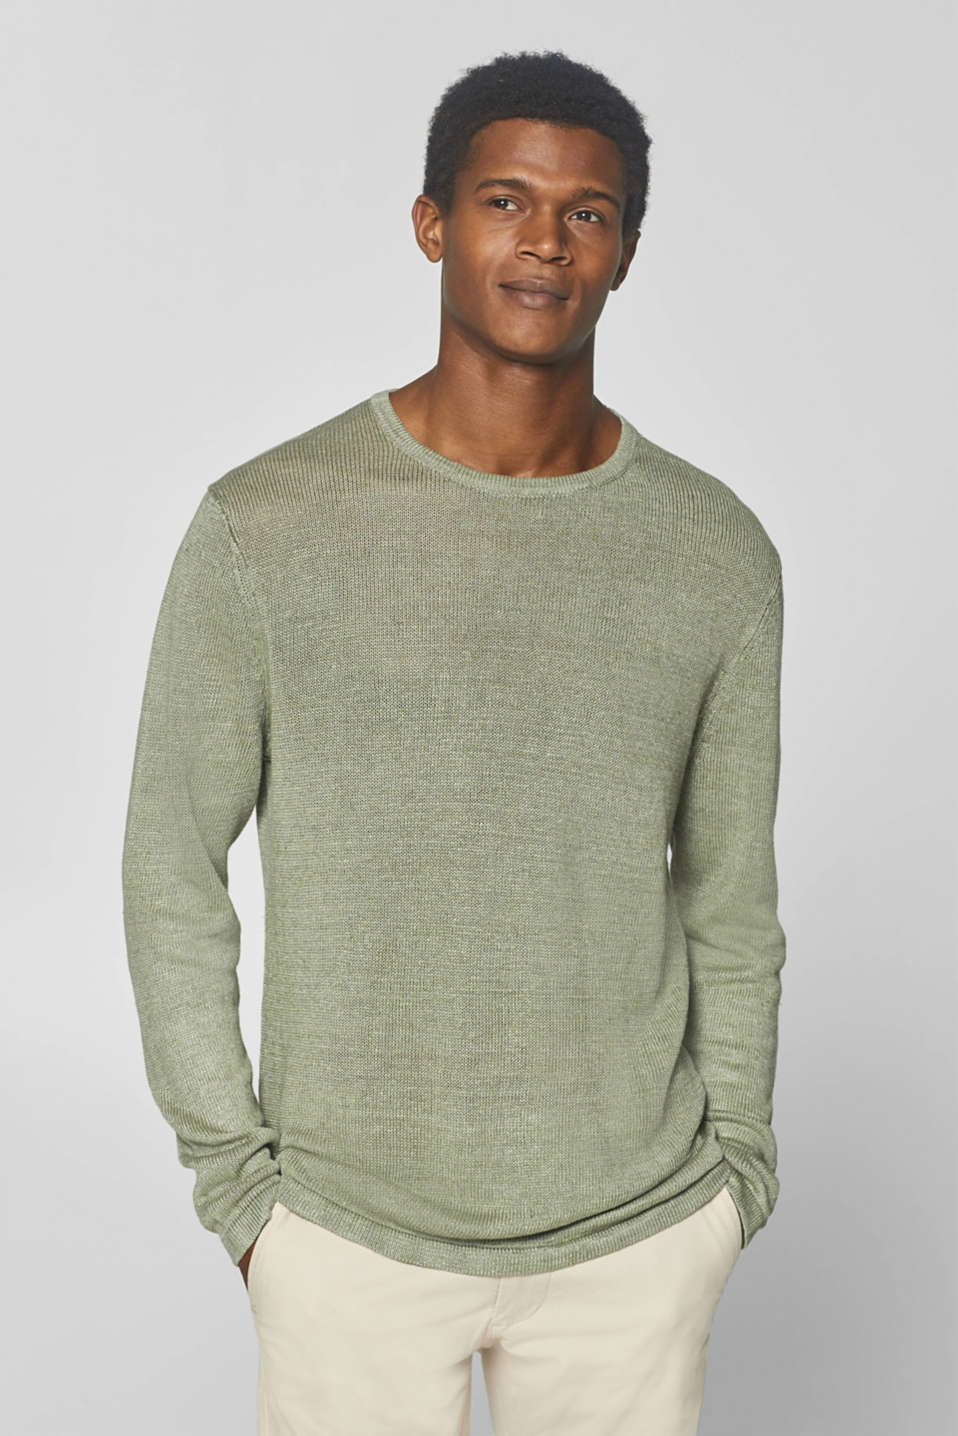 Esprit - 100% linen: jumper made of melange knit fabric